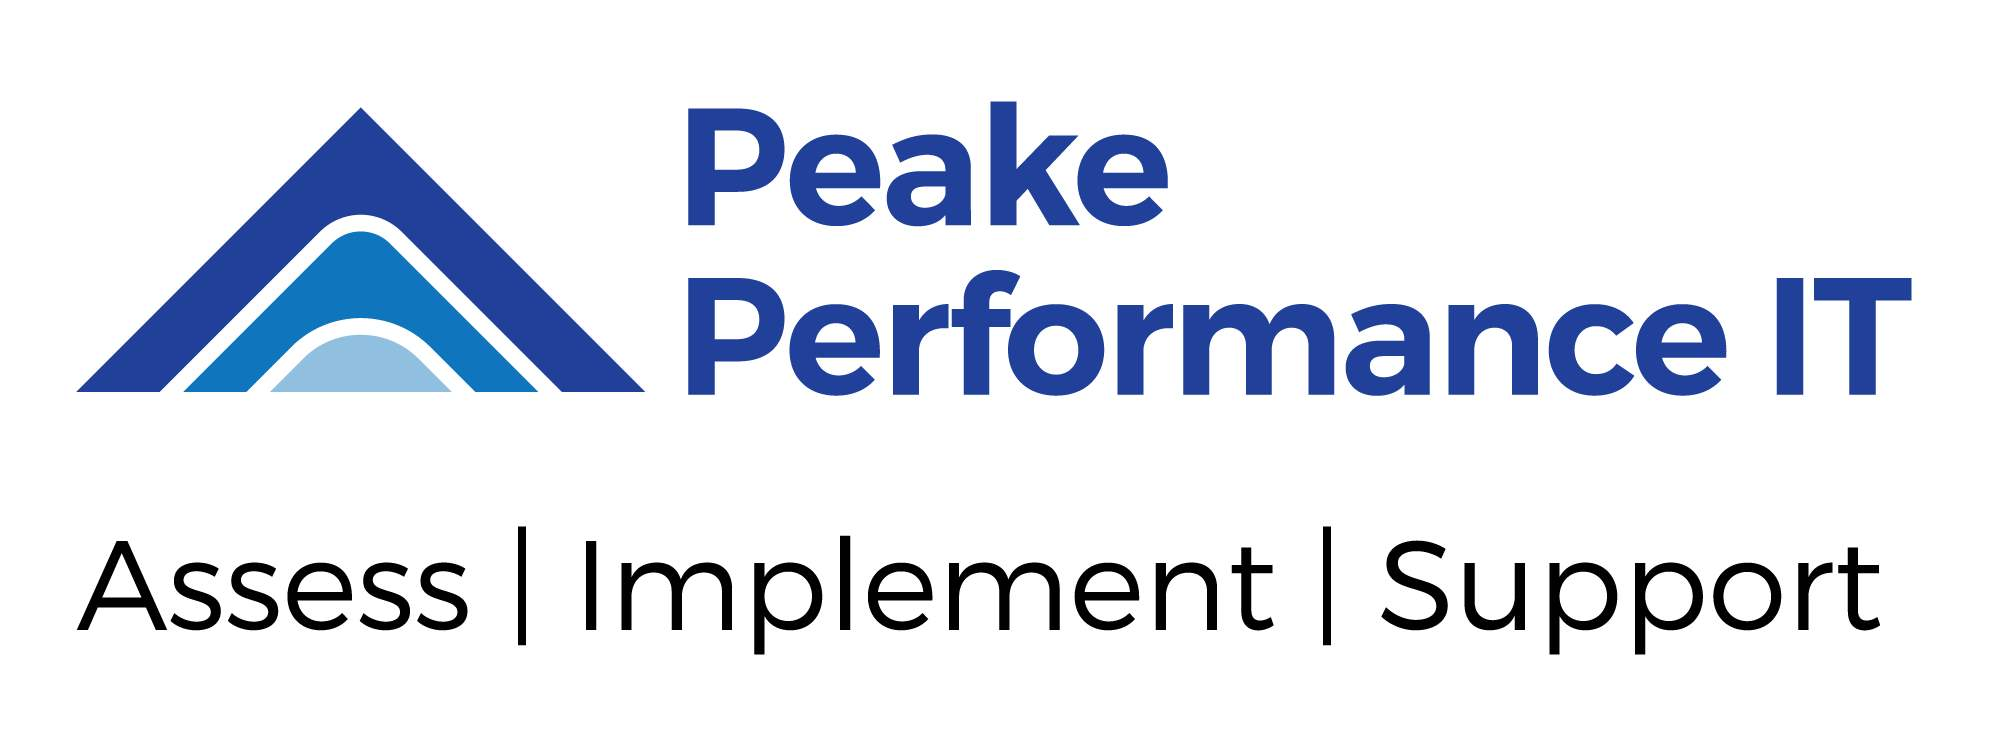 Peake Performance IT Corp logo